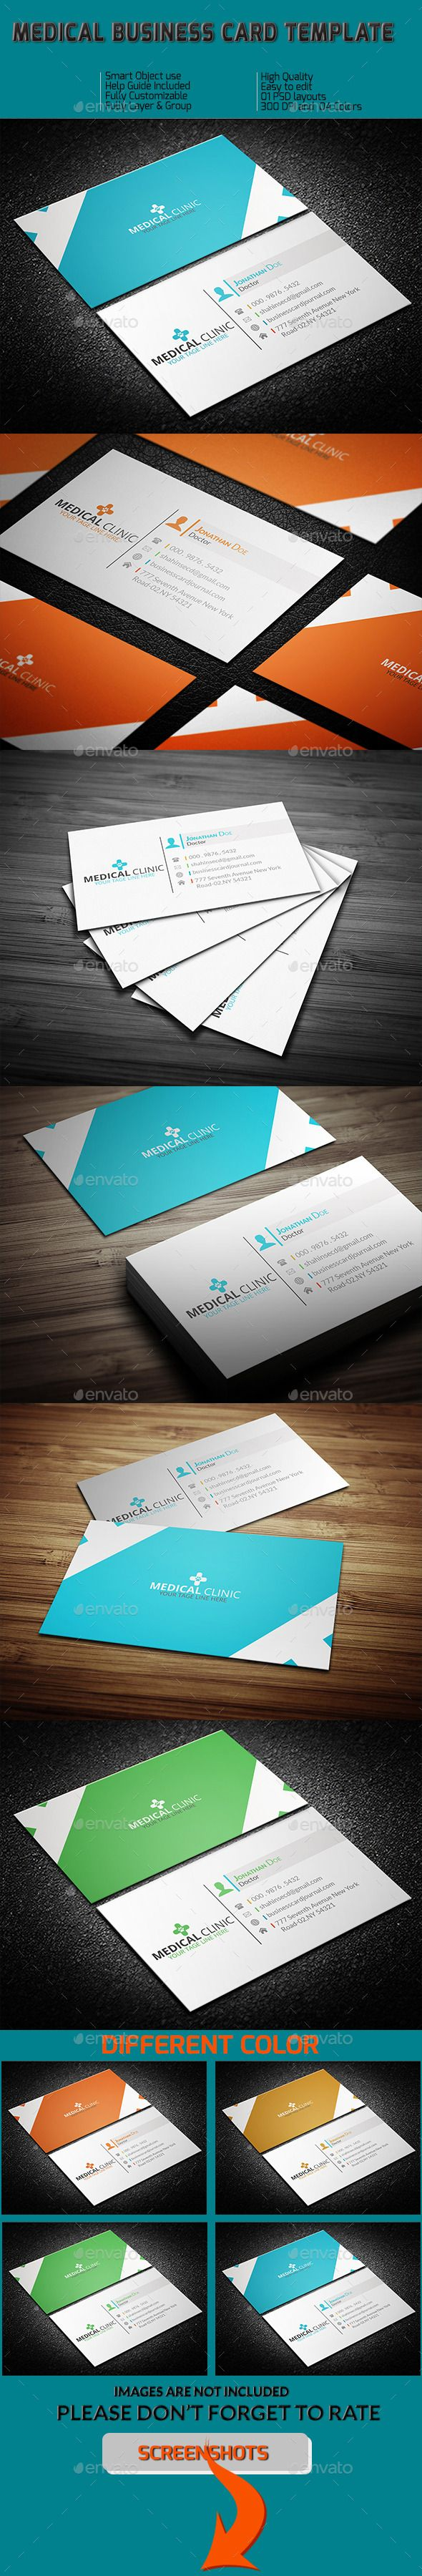 Medical Business Card Template  Card Templates Business Cards